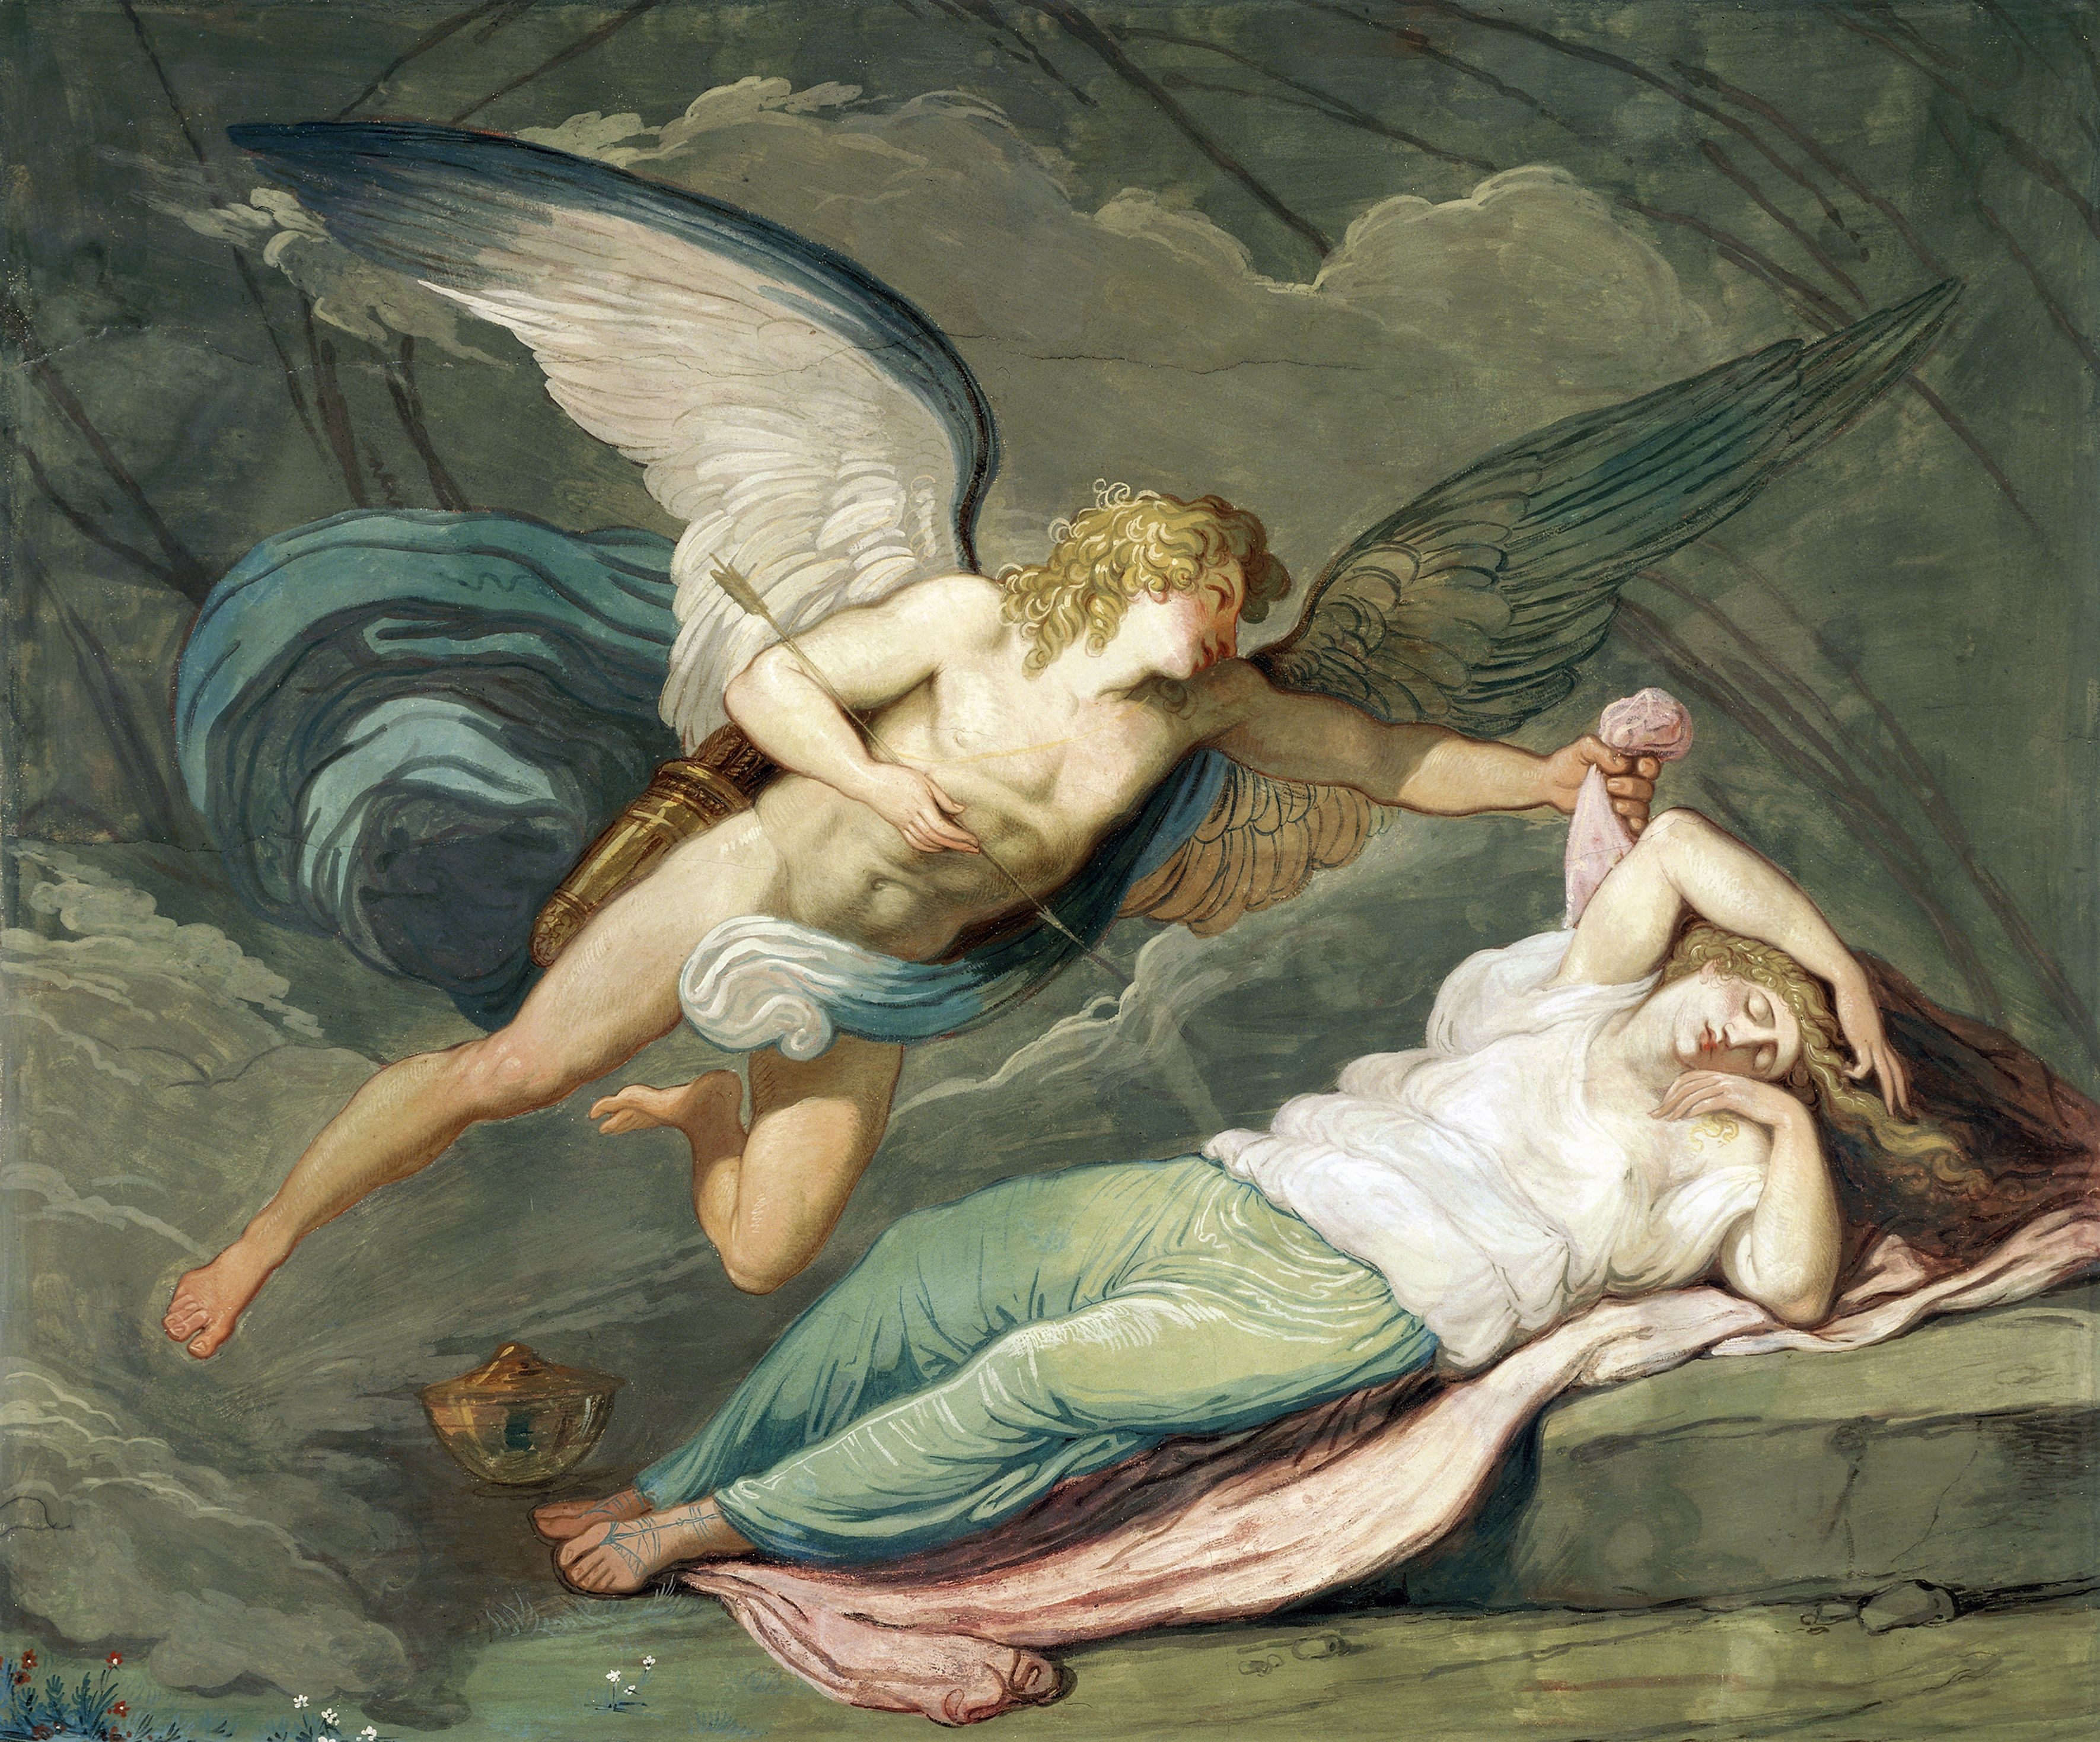 the great love story of cupid and psyche